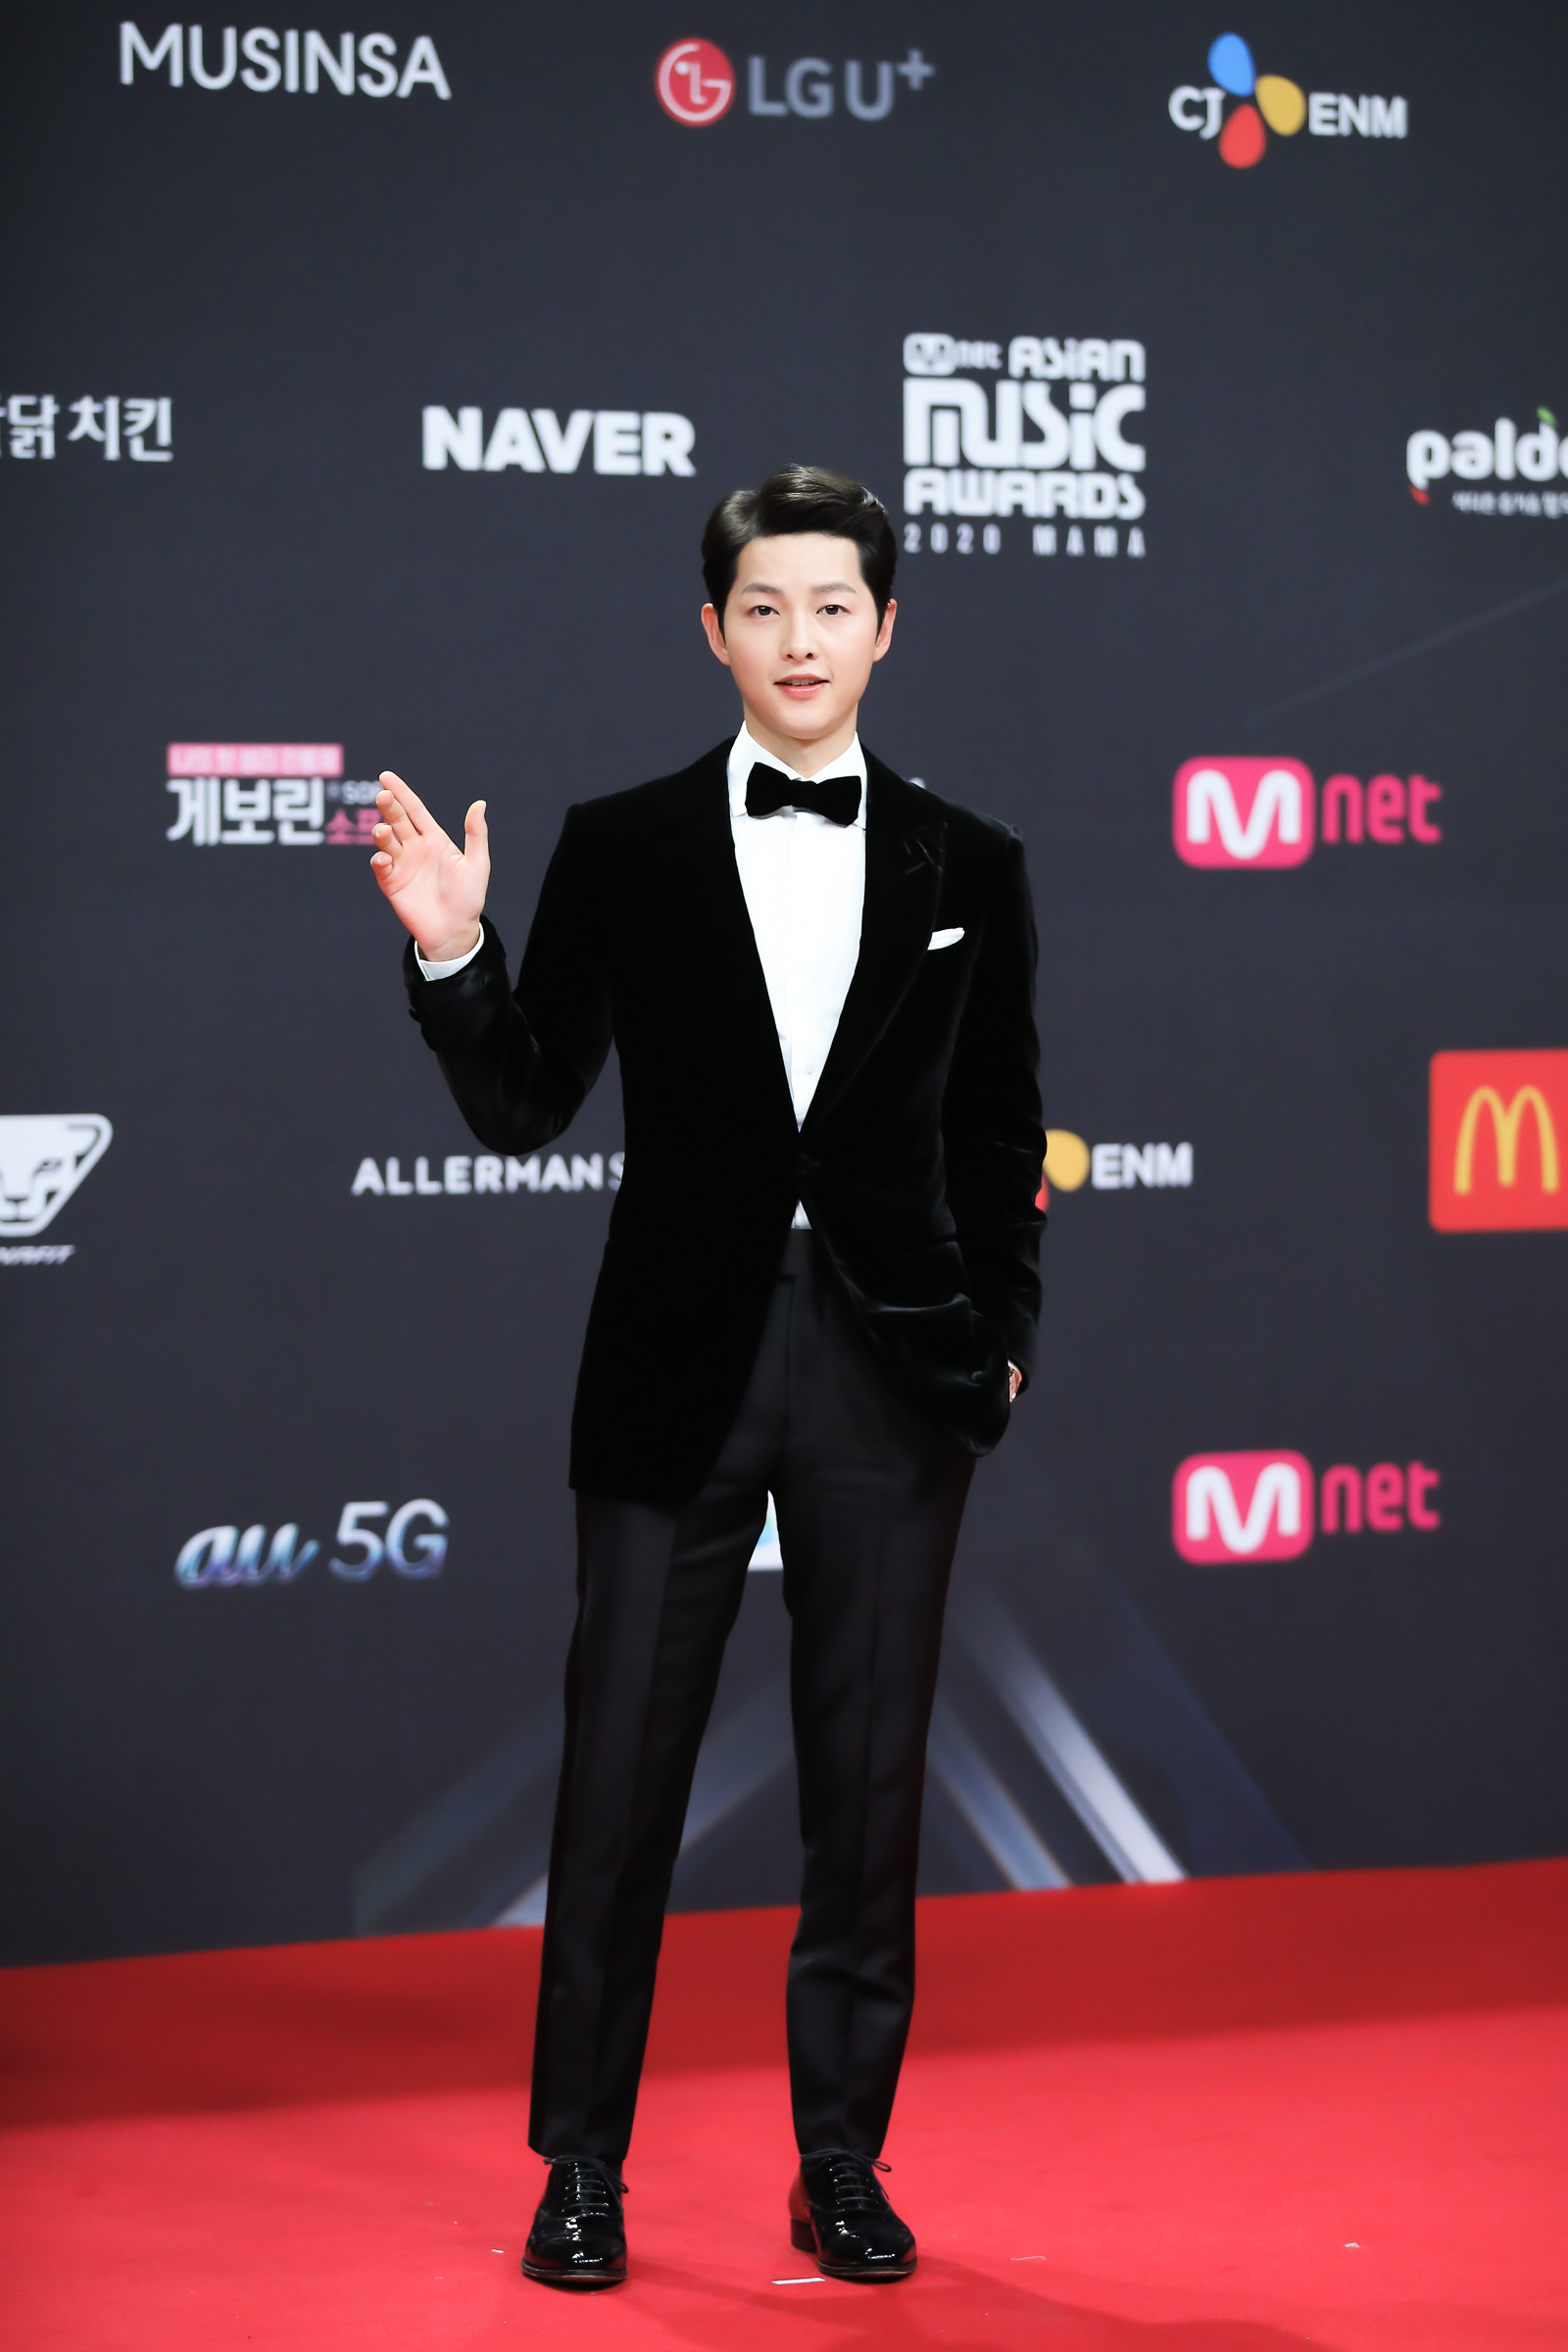 Song Joong Ki wears a suit as he attends the 2020 Mnet Asian Music Awards